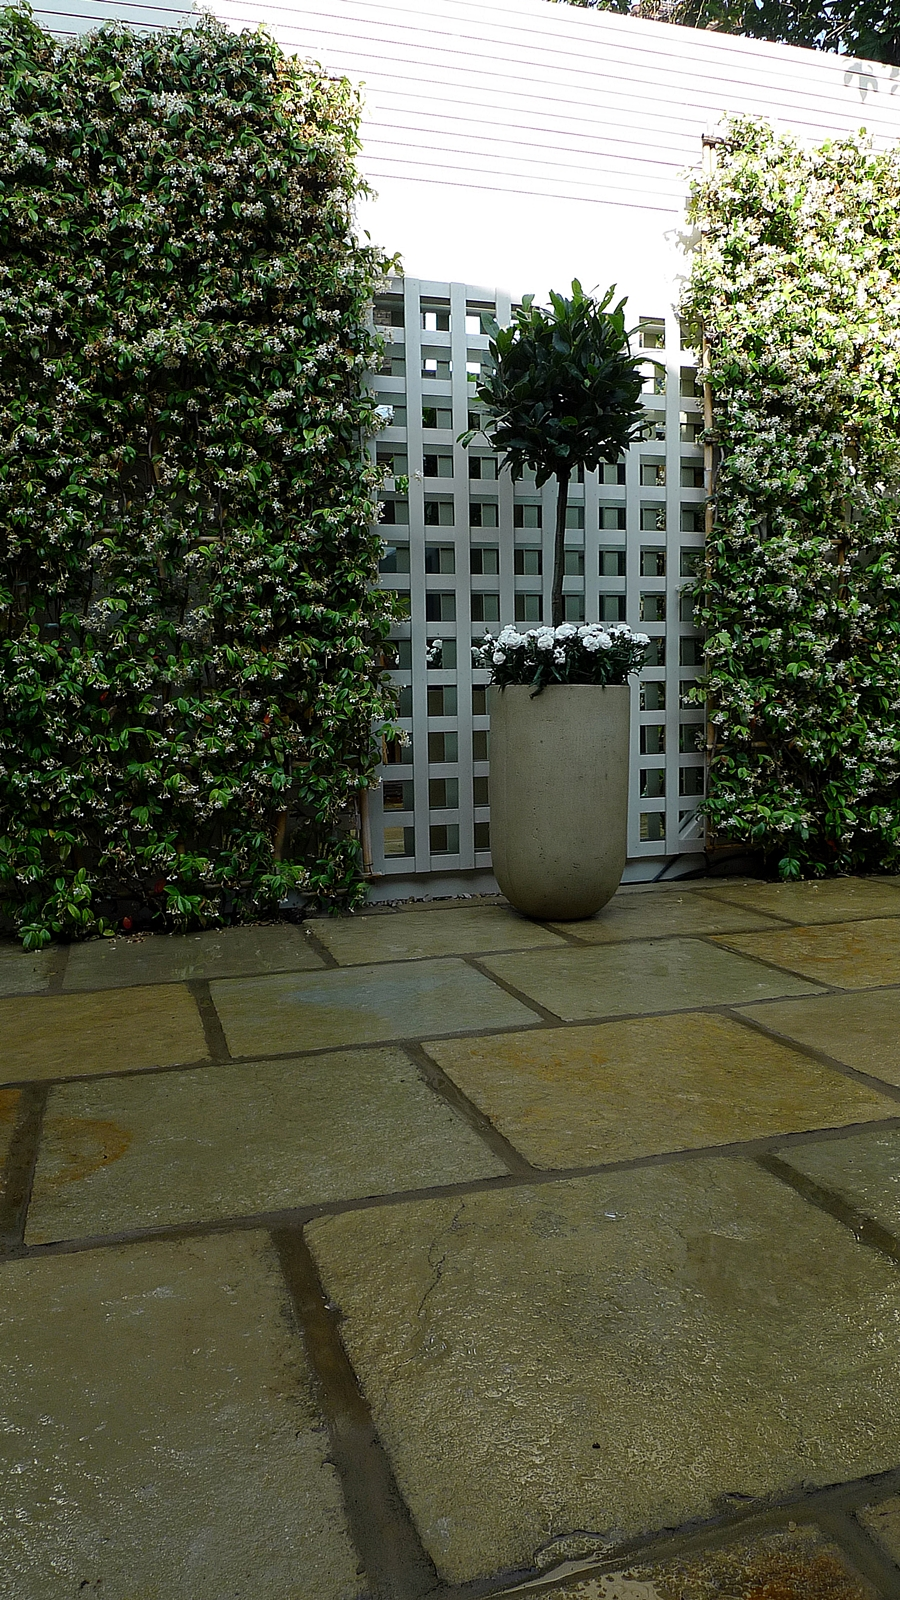 modern courtyard garden design limestone paving painted trellis and screen topiary and planters wandsworth battersea clapham balham fulham chelsea london